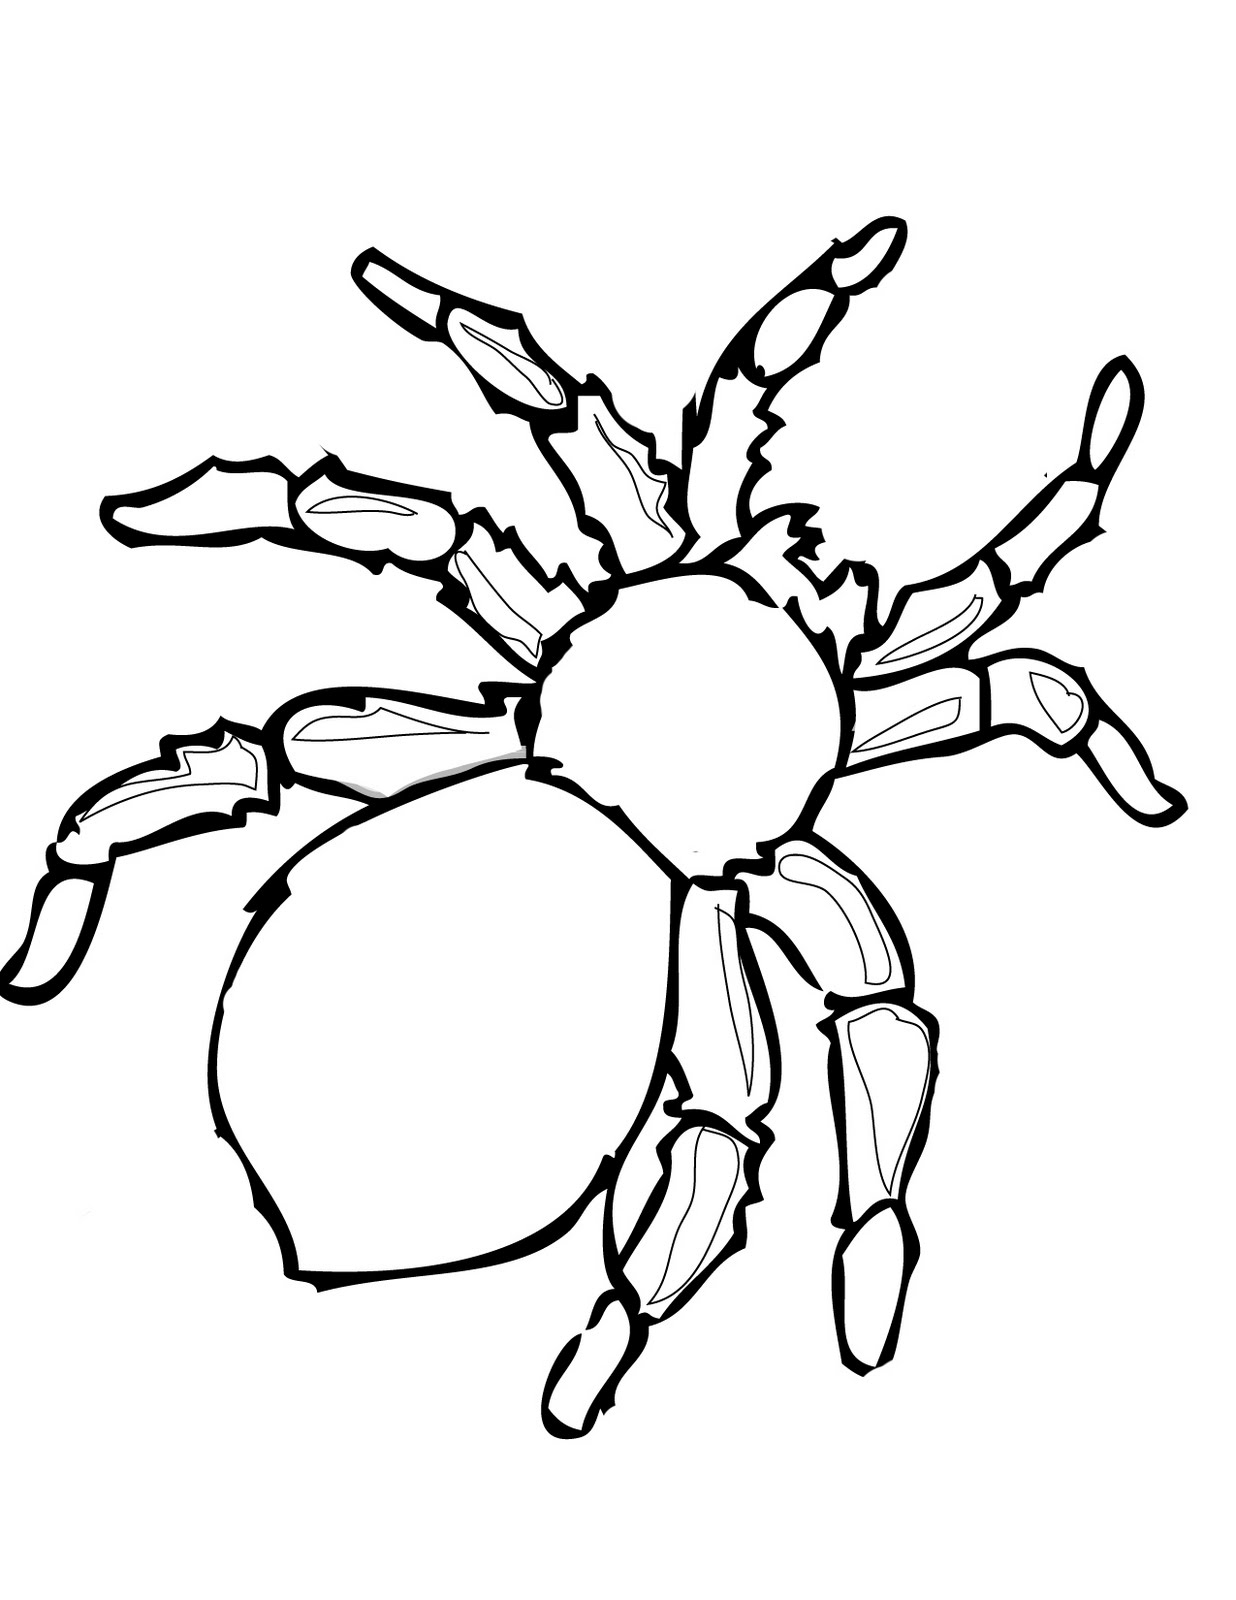 Free Printable Spider Coloring Pages For Kids Coloring Pages And Printable